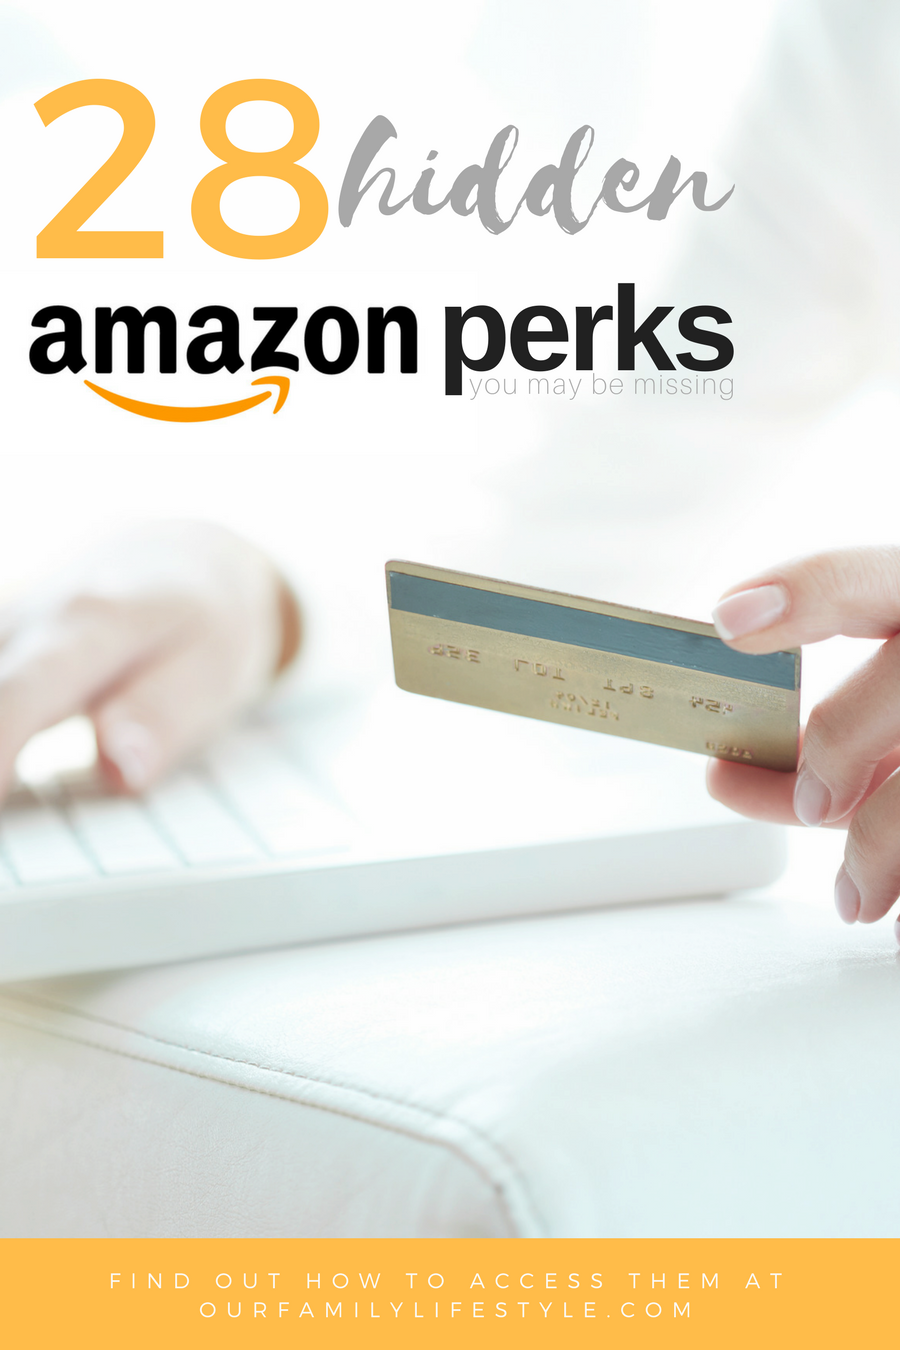 28 Hidden Amazon Perks You May Be Missing